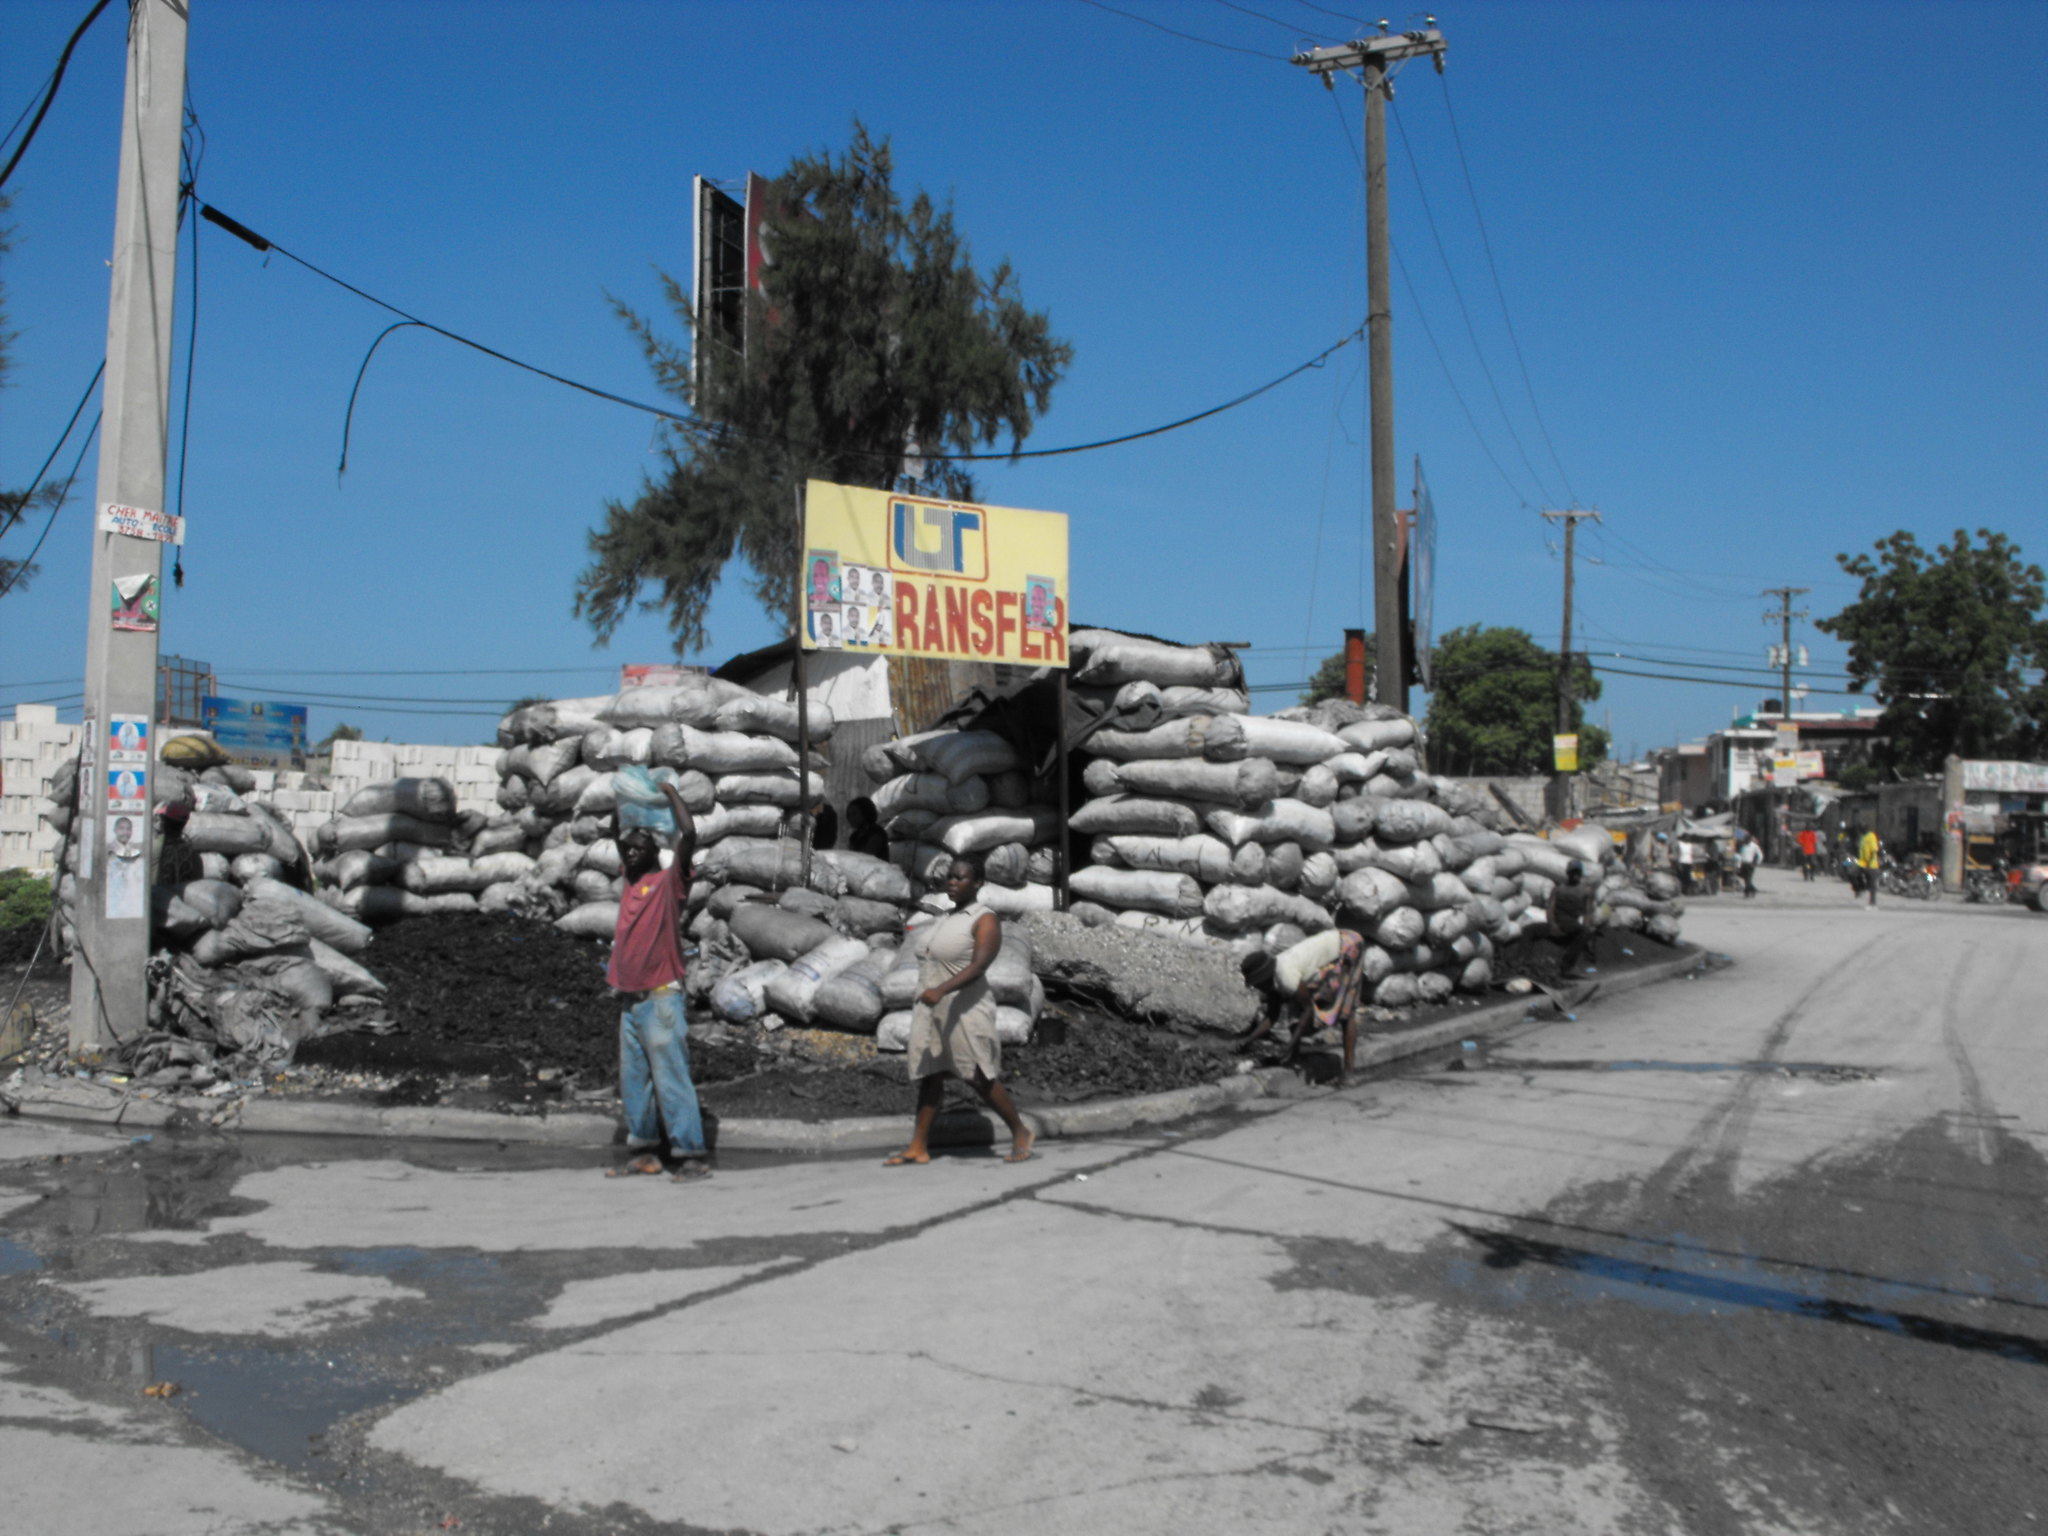 Charcoal market